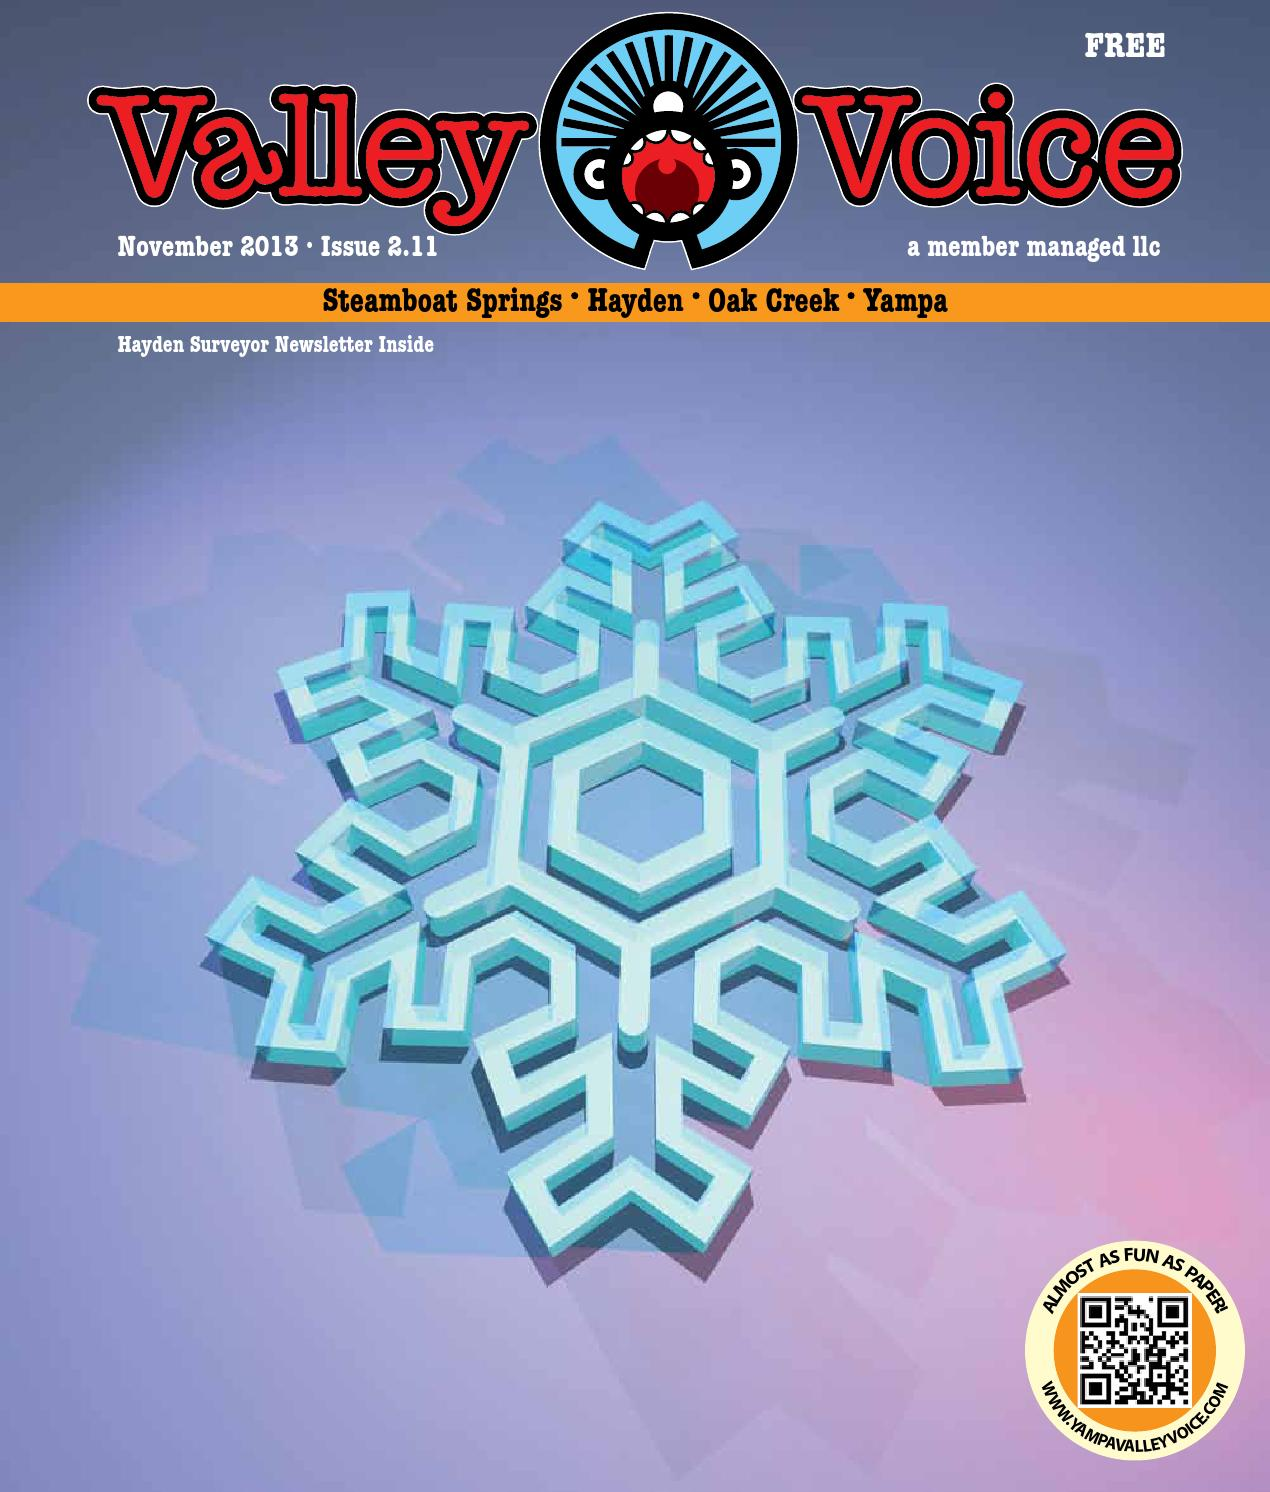 Valley Voice November 2013 By Paulie Anderson Issuu